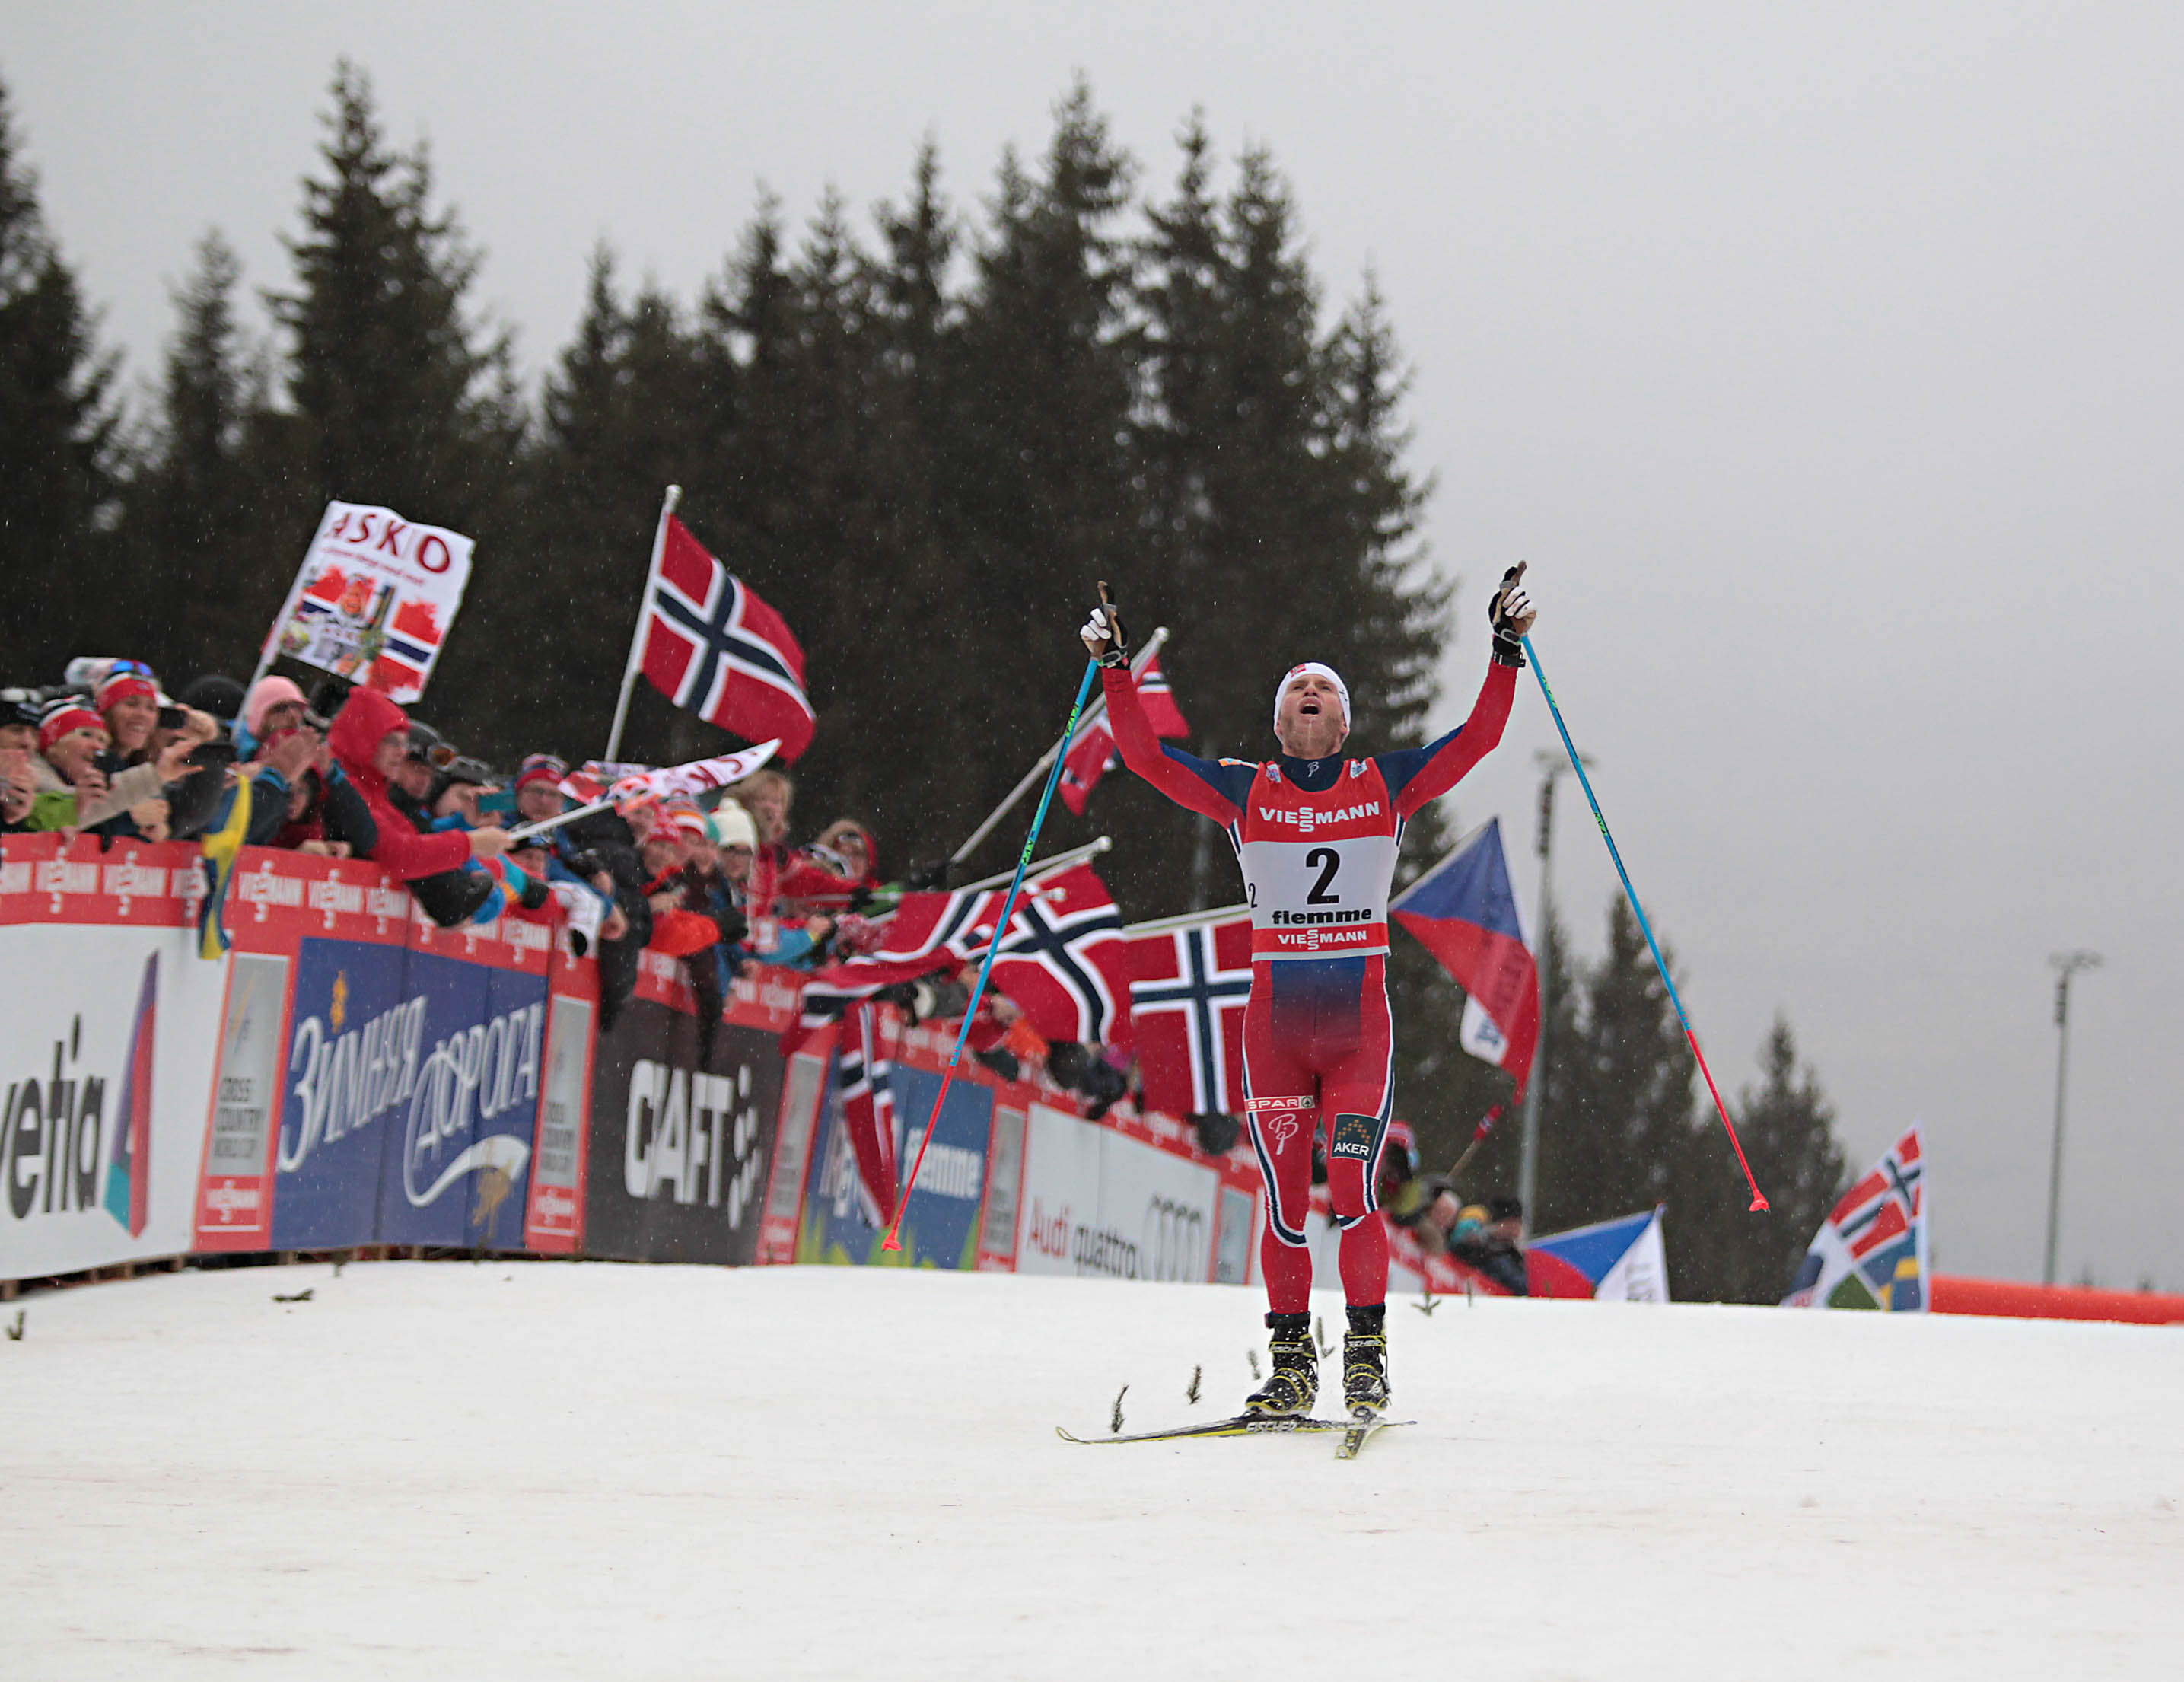 https://fasterskier.com/wp-content/blogs.dir/1/files/2015/01/Sundby_Arrivo02.jpg